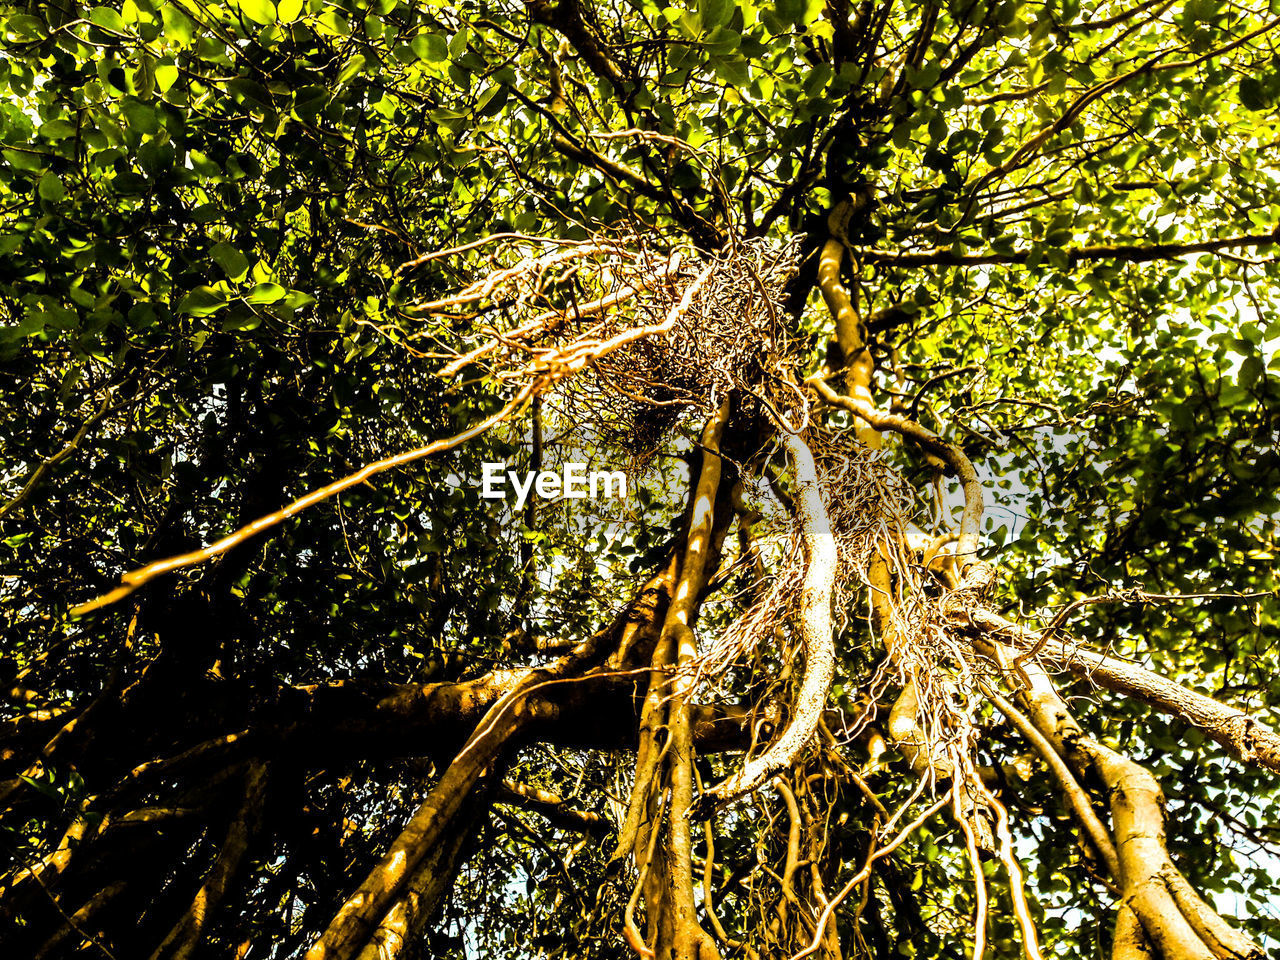 tree, nature, branch, no people, day, outdoors, forest, green color, tree trunk, one animal, growth, animal themes, reptile, beauty in nature, close-up